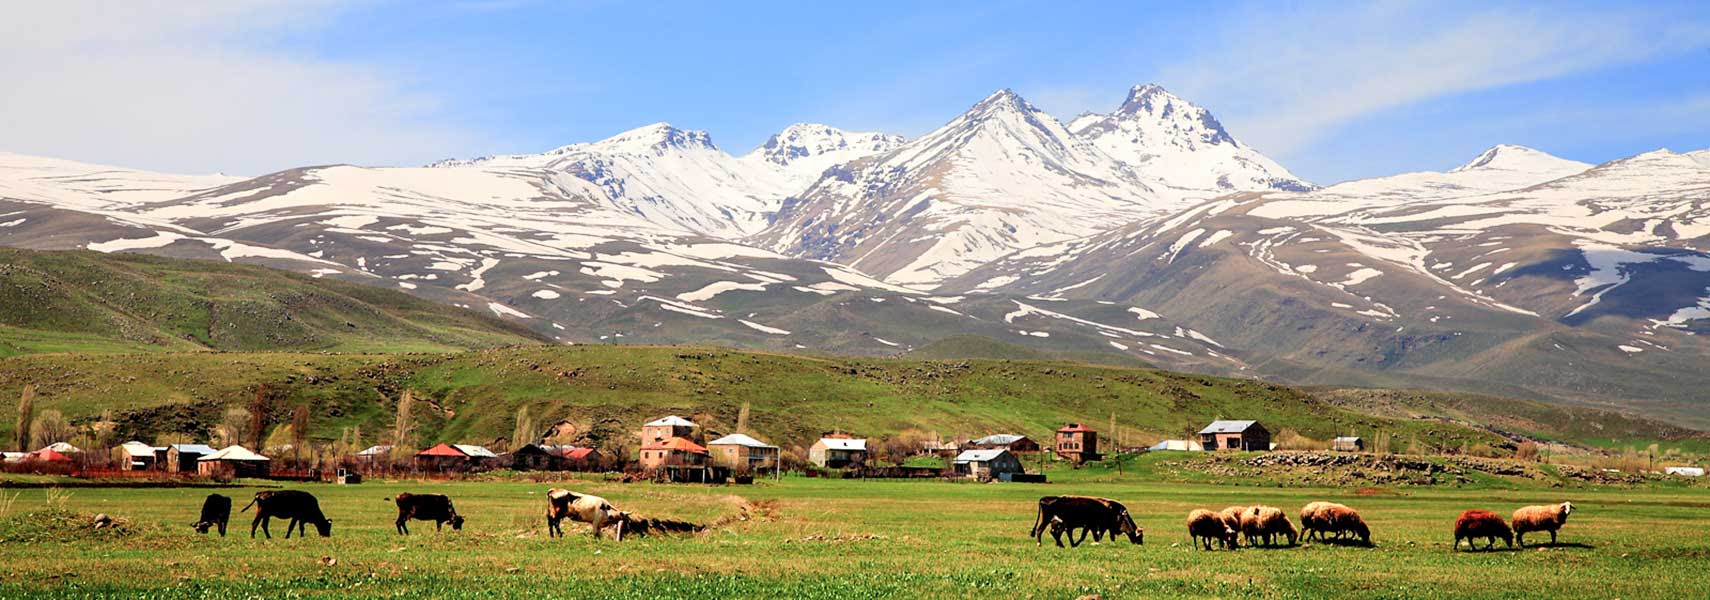 Aragats mountain Armenia